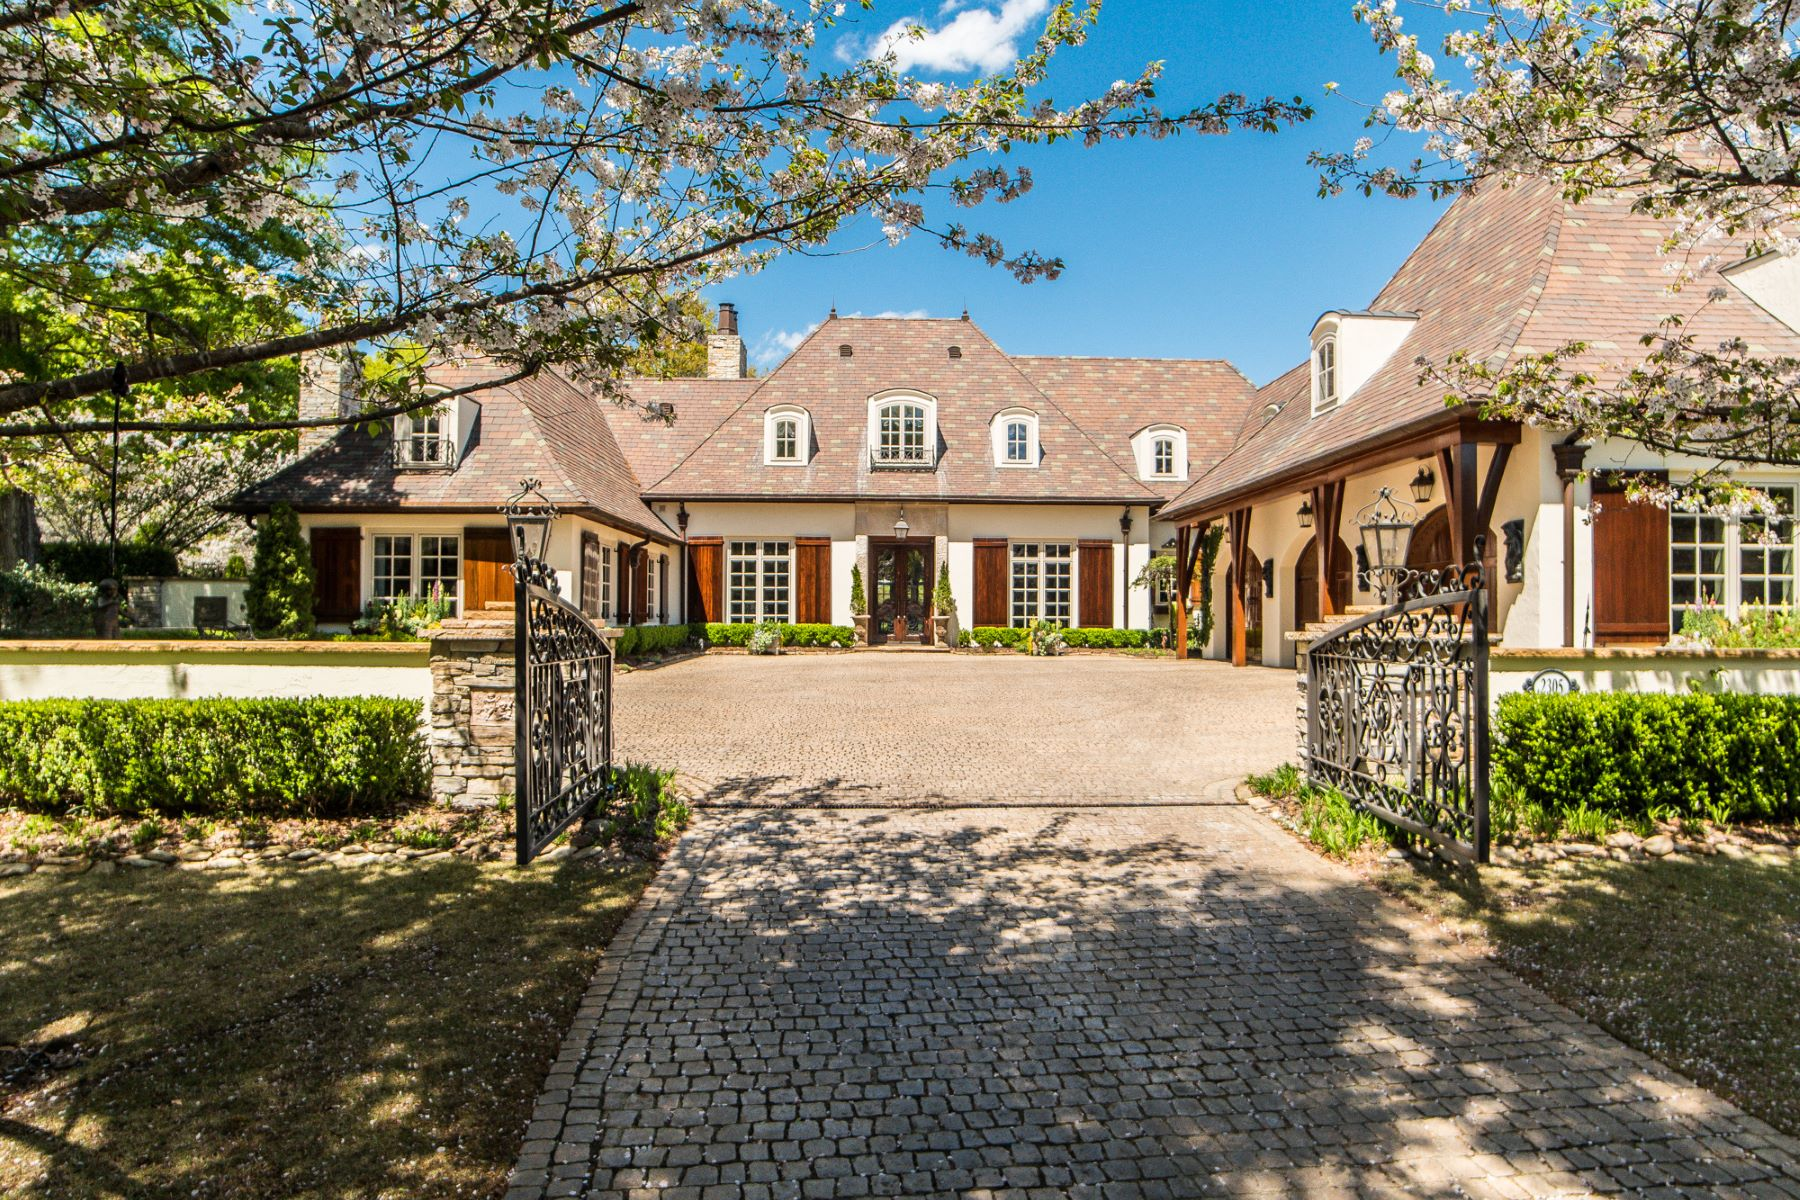 Single Family Home for Sale at The Ultimate in Refined Living with Classic Elegance 2305 Ocean Point Drive Wilmington, North Carolina 28405 United States